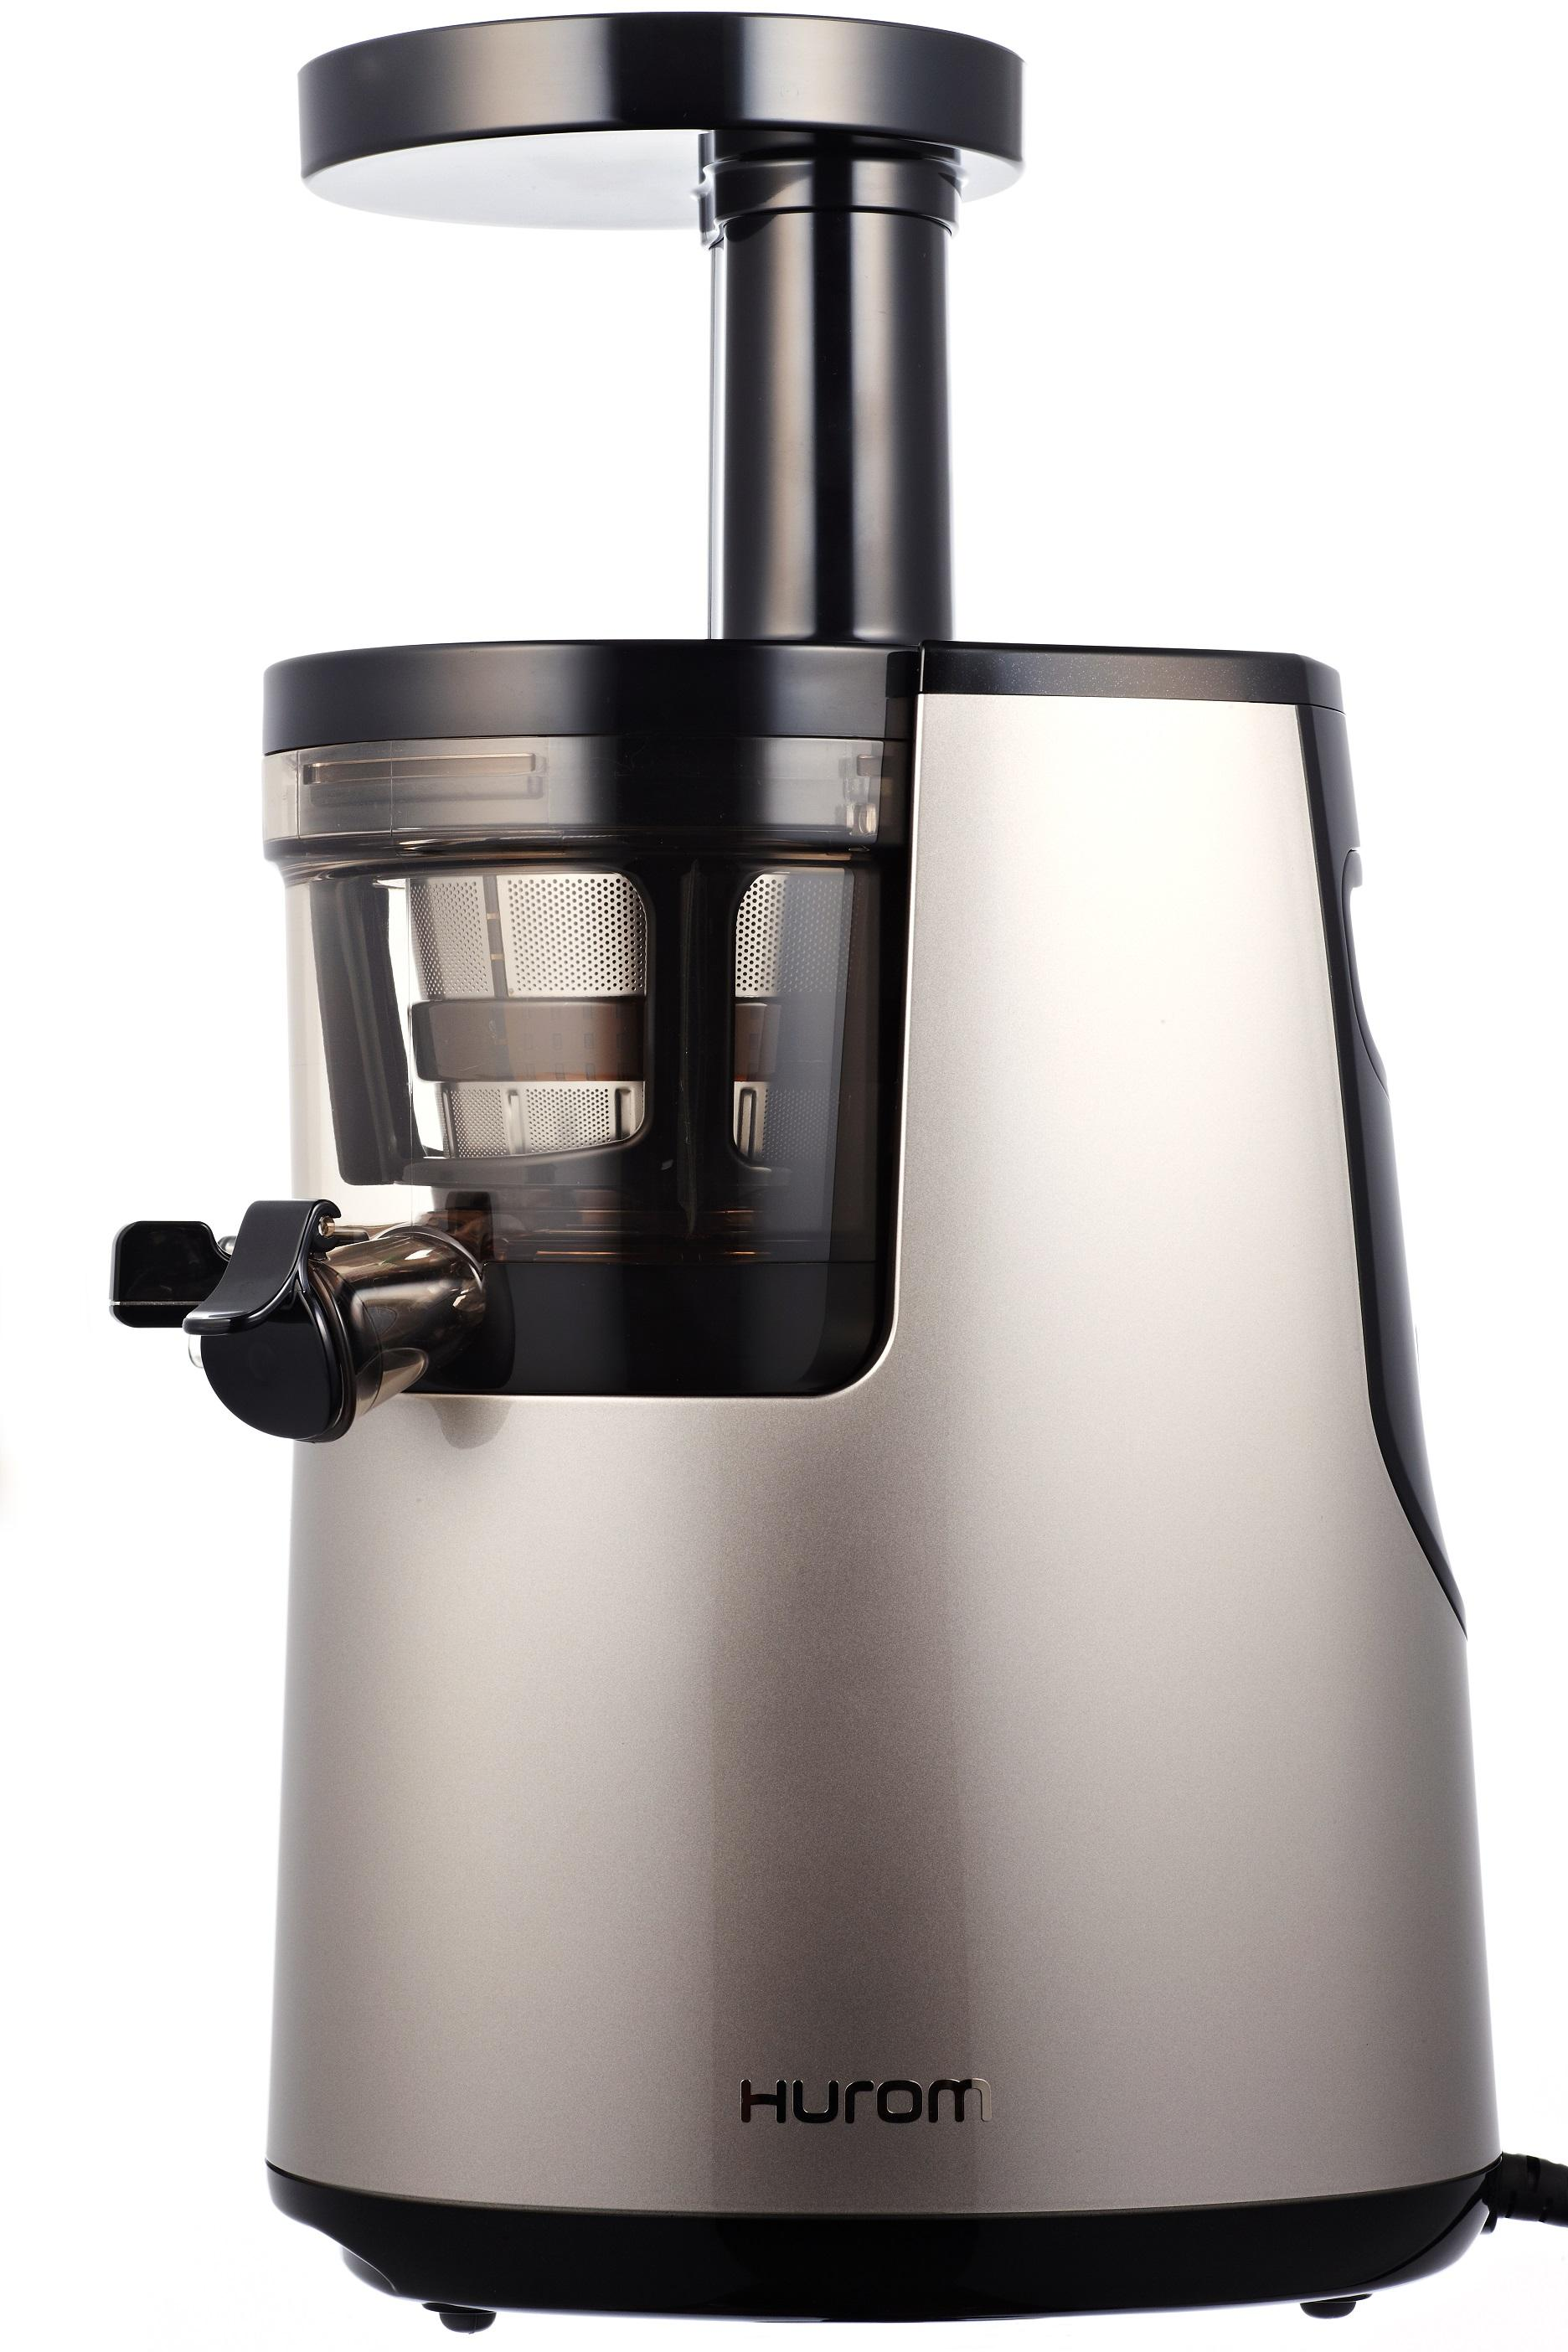 Hurom Hh Premium Slow Juicer And Smoothie Maker : Hurom HH Elite Slow Juicer Williams Sonoma AU